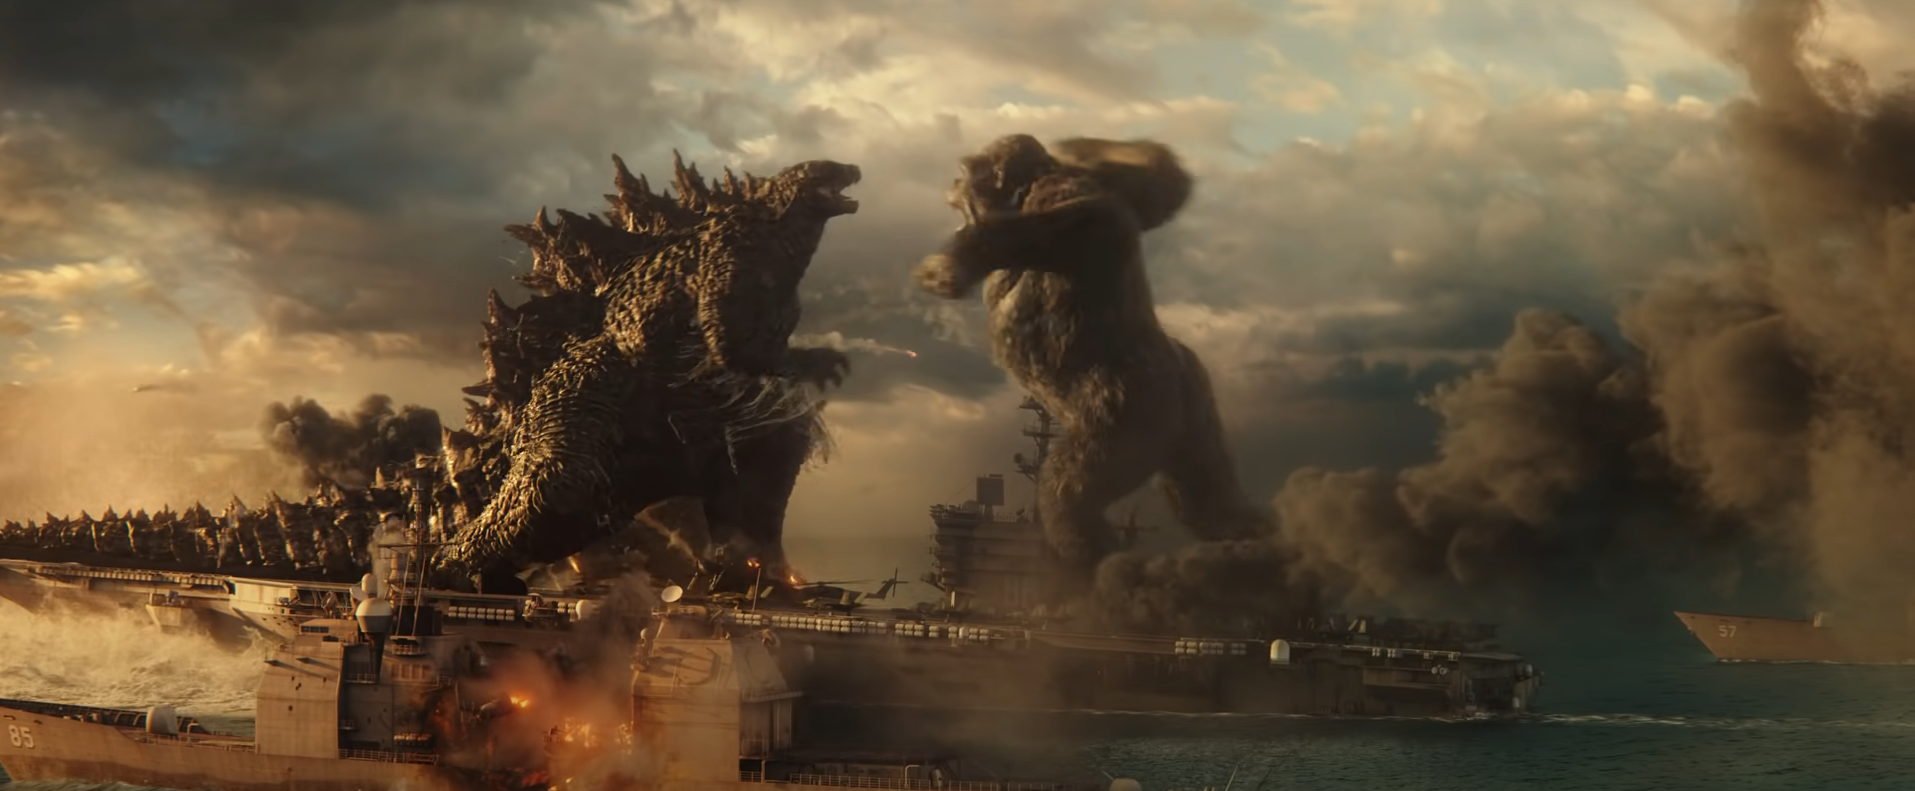 Godzilla and Kong face off on the back of an aircraft carrier. Kong is about to punch Godzilla in the face.